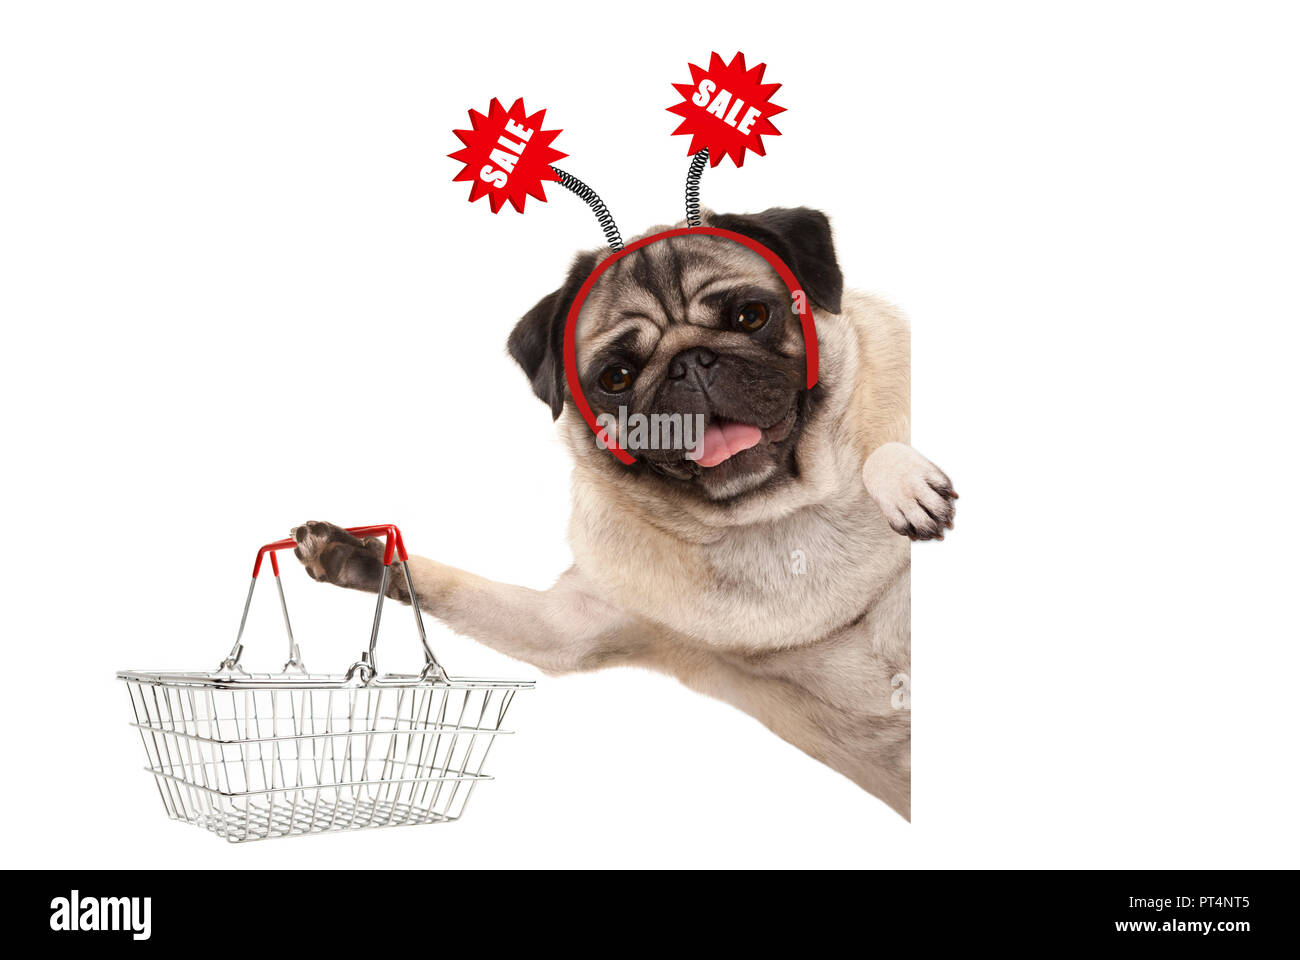 happy smiling pug puppy dog, holding up shopping basket, wearing diadem with red sale sign, isolated on white background Stock Photo